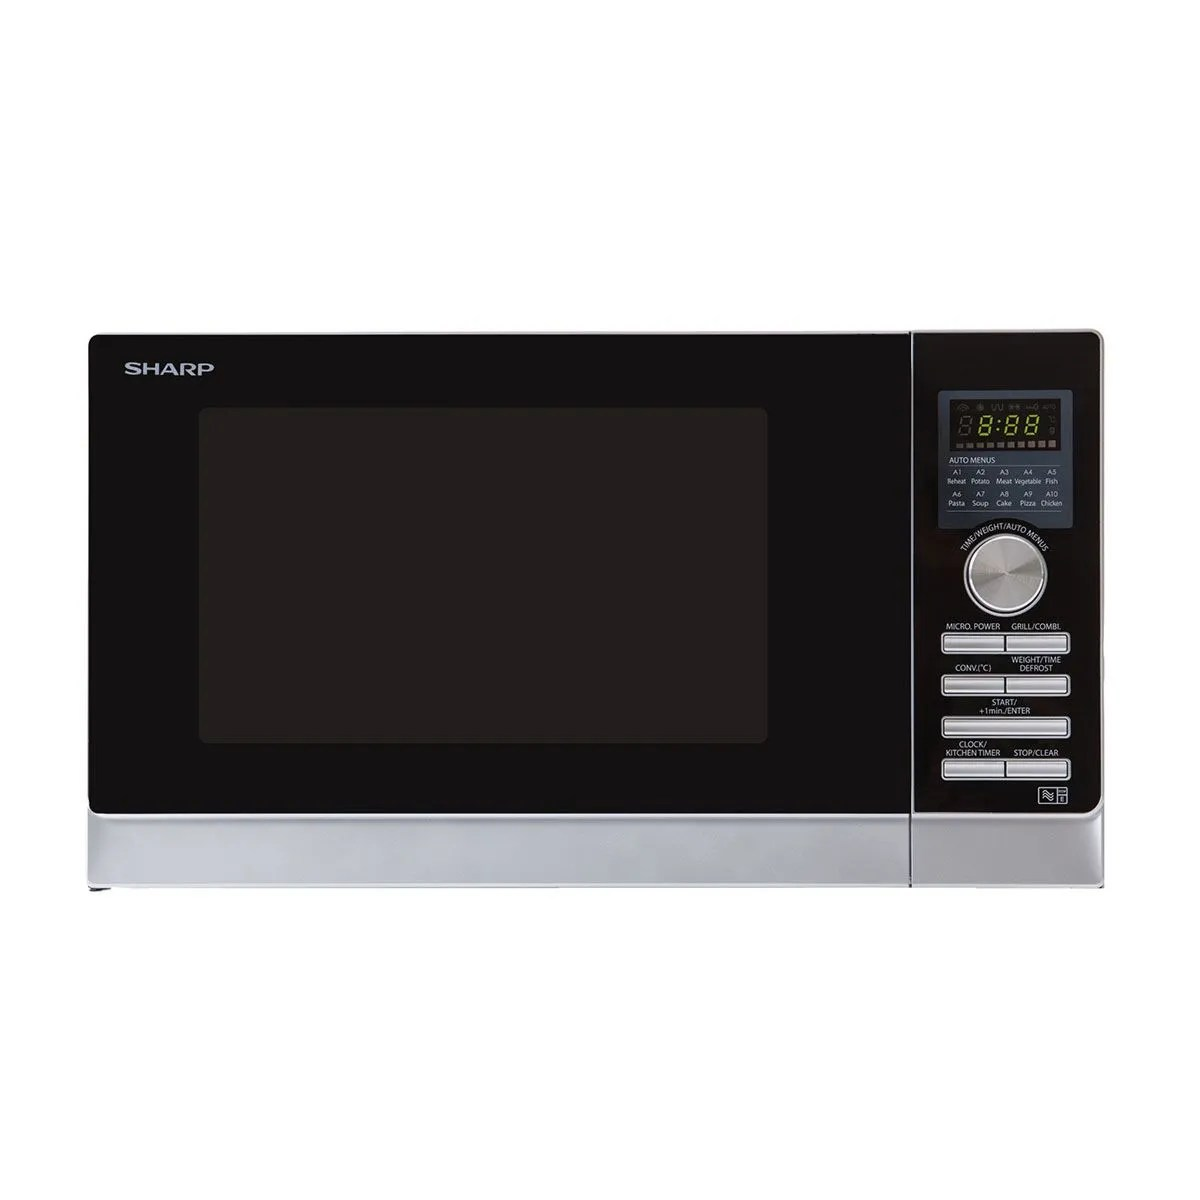 sharp r843slm 25l 900w convection microwave stainless steel